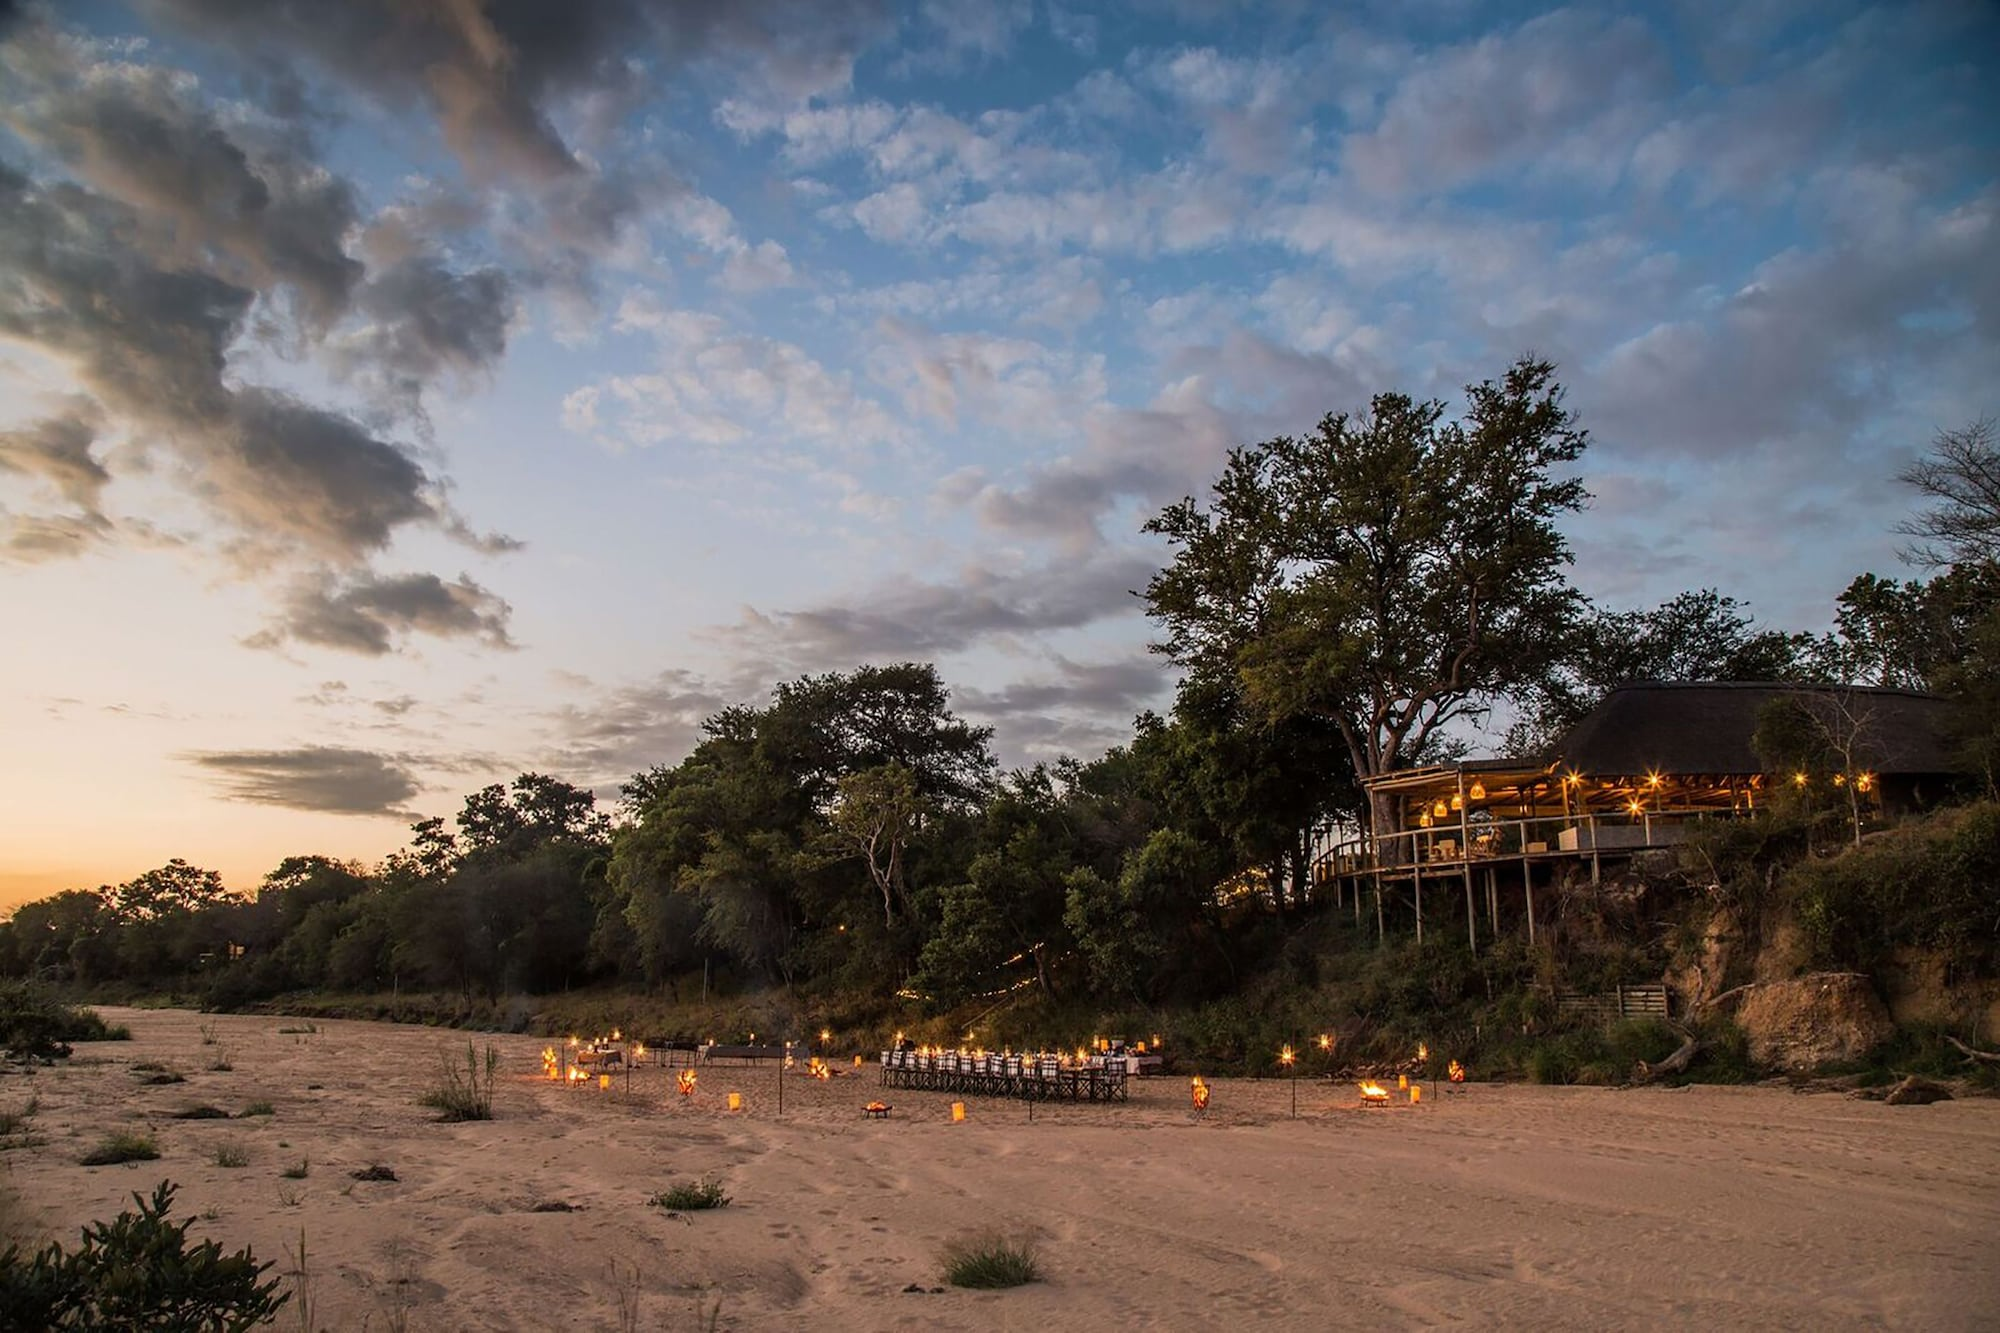 Tanda Tula Safari Camp, Ehlanzeni